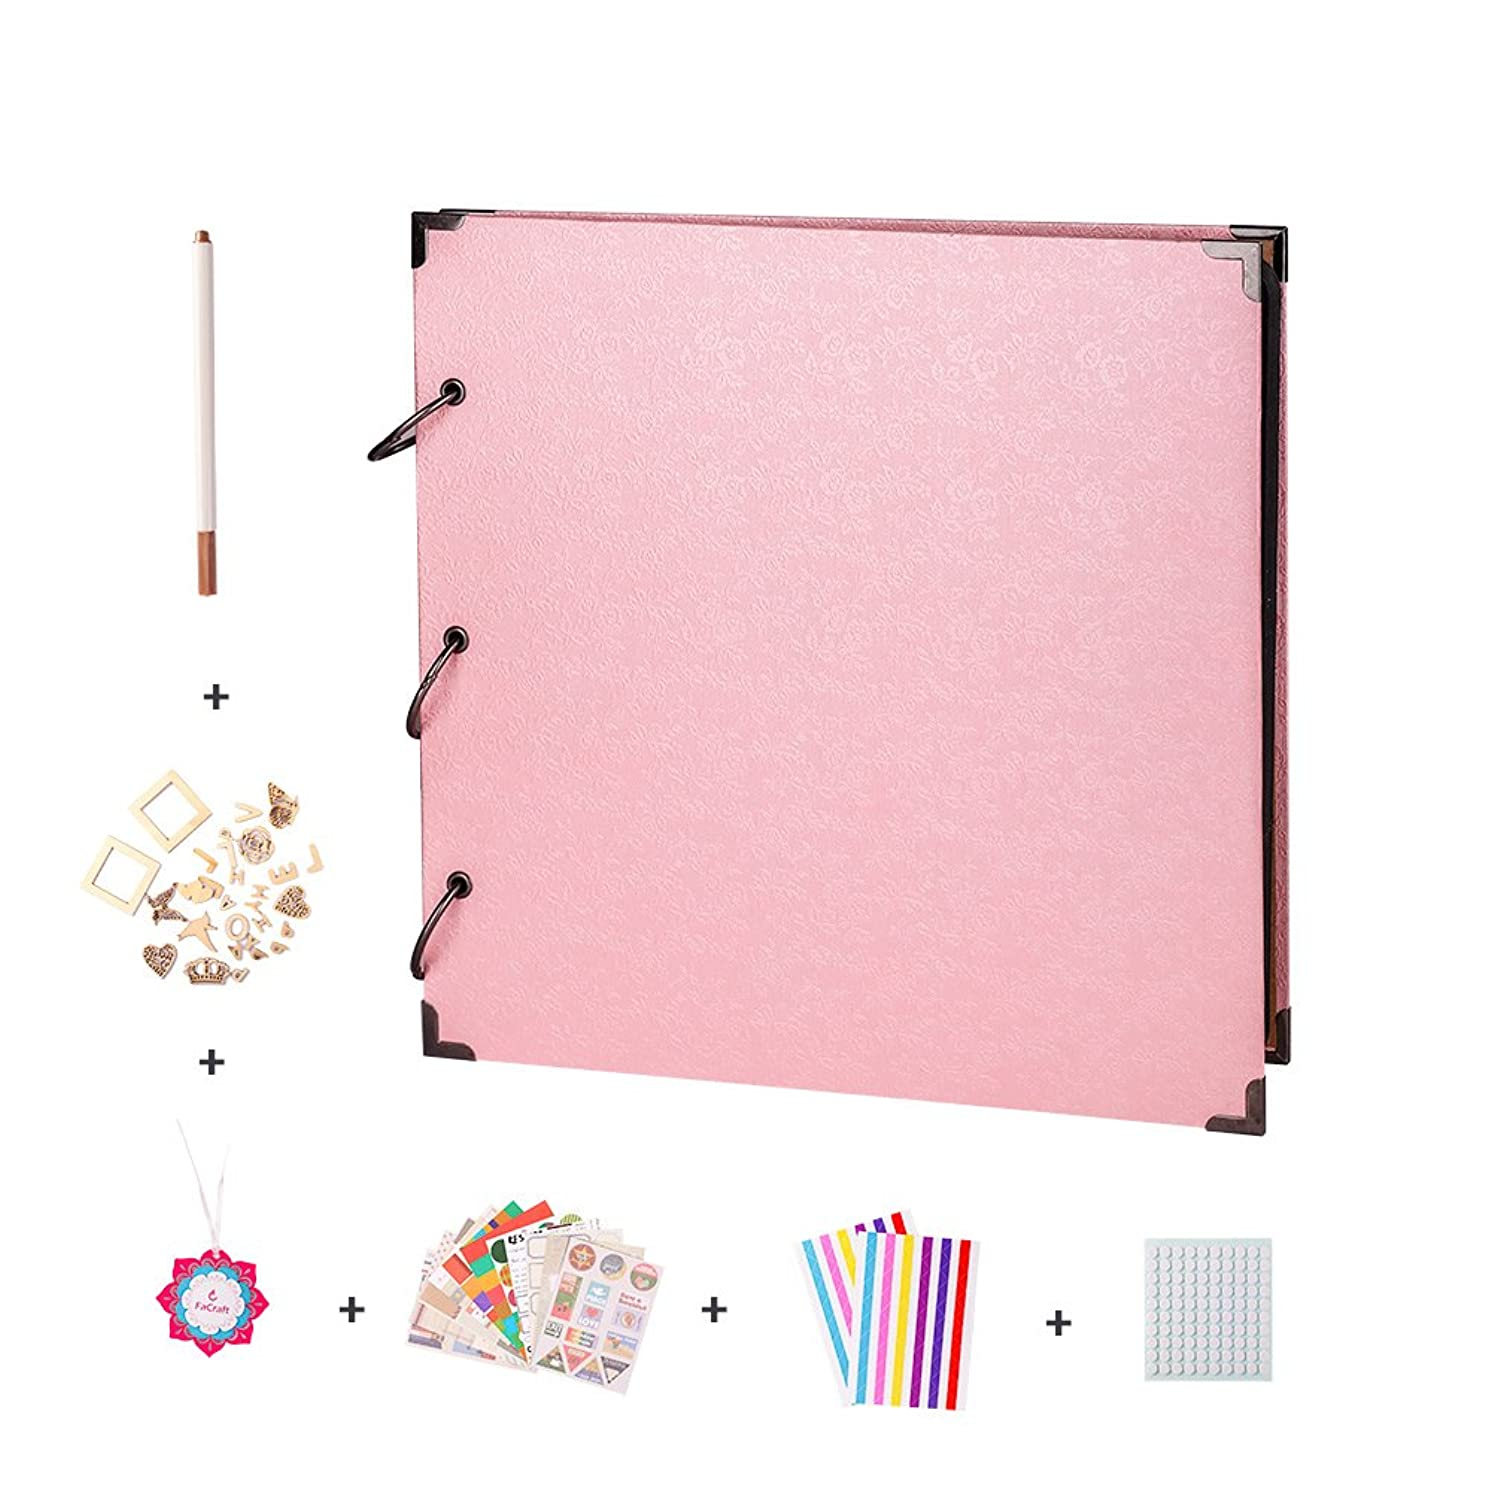 FaCraft 12x12 Scrapbook Album and Accessories (Pink)